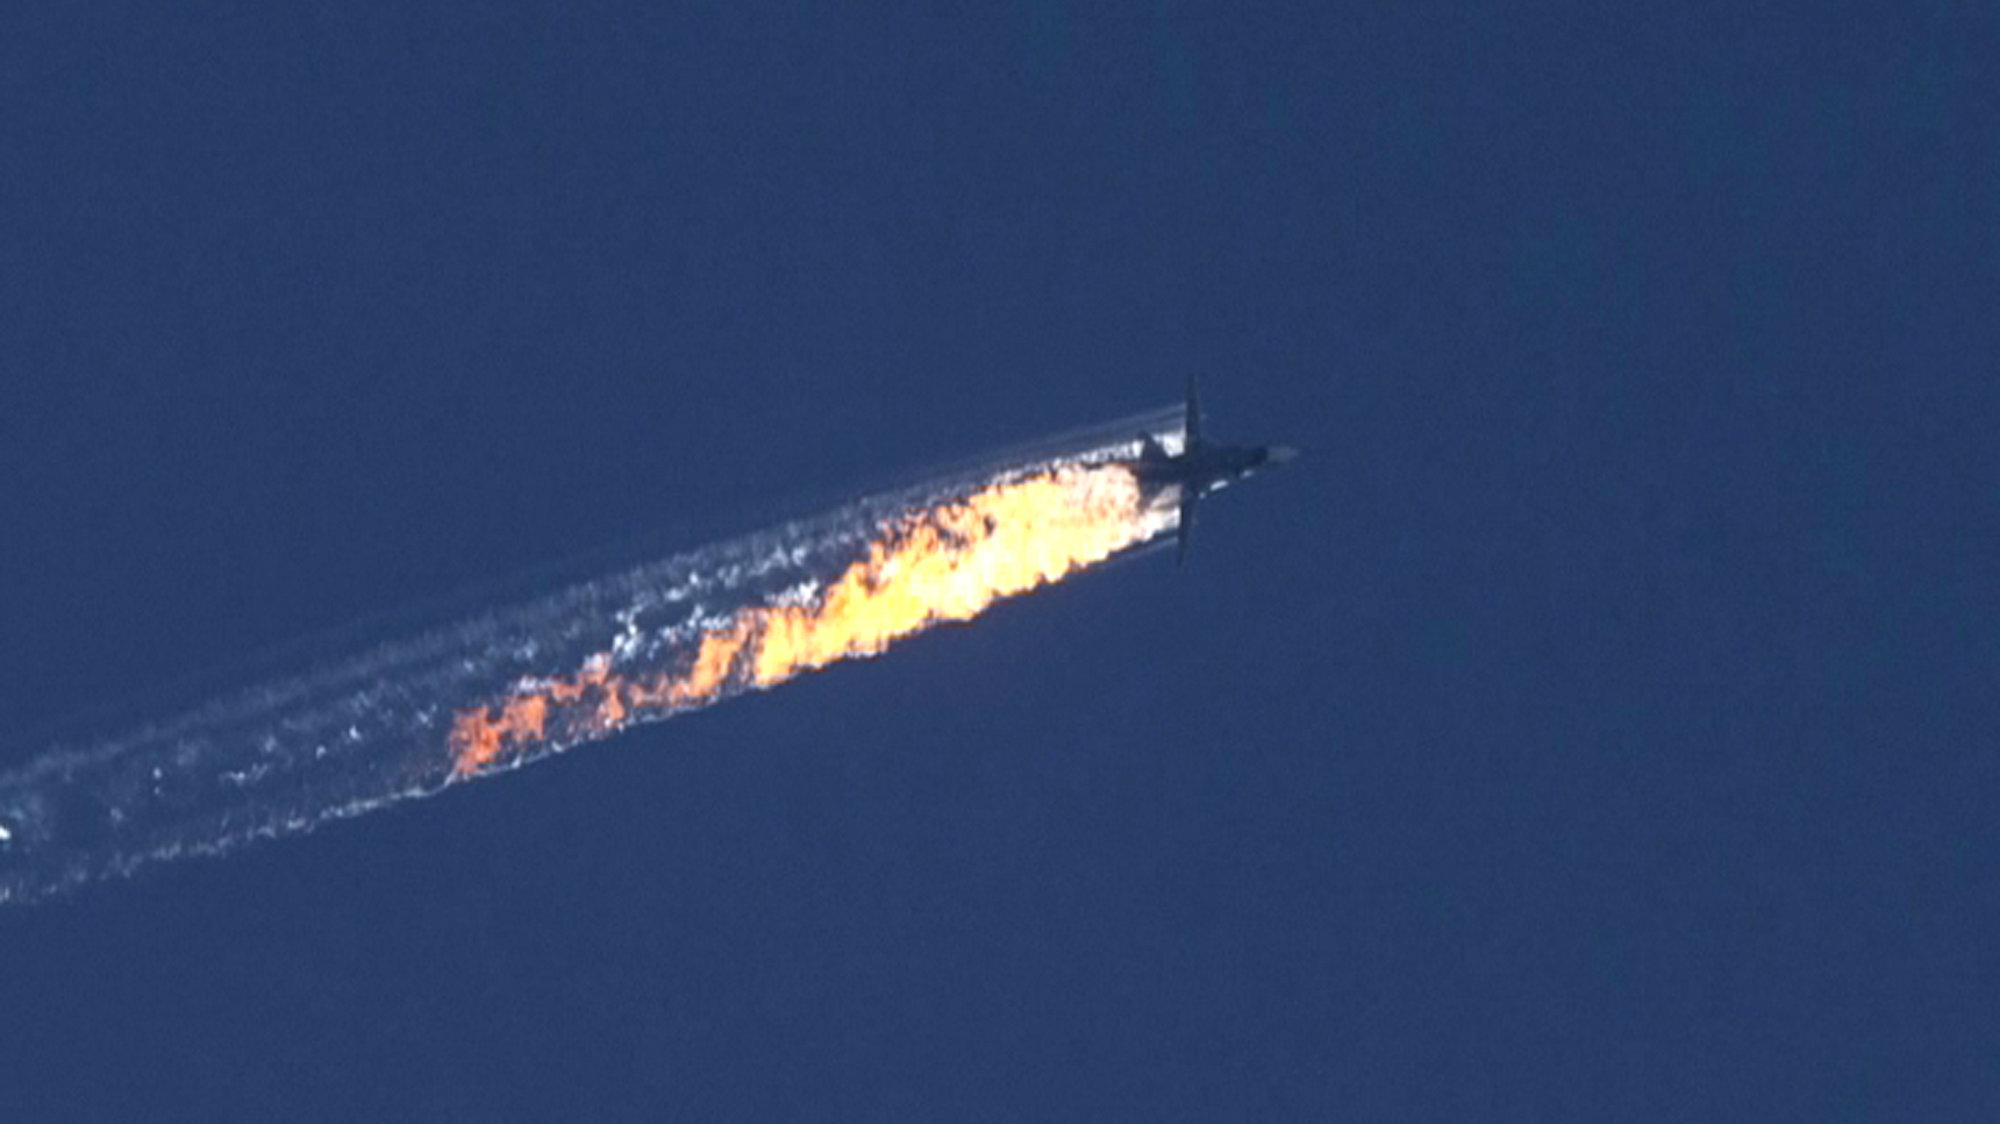 A still image made available on 24 November 2015 from video footage shown by the HaberTurk TV Channel shows a burning trail as a plane comes down after being shot down near the Turkish-Syrian border, over north Syria, 24 November 2015.